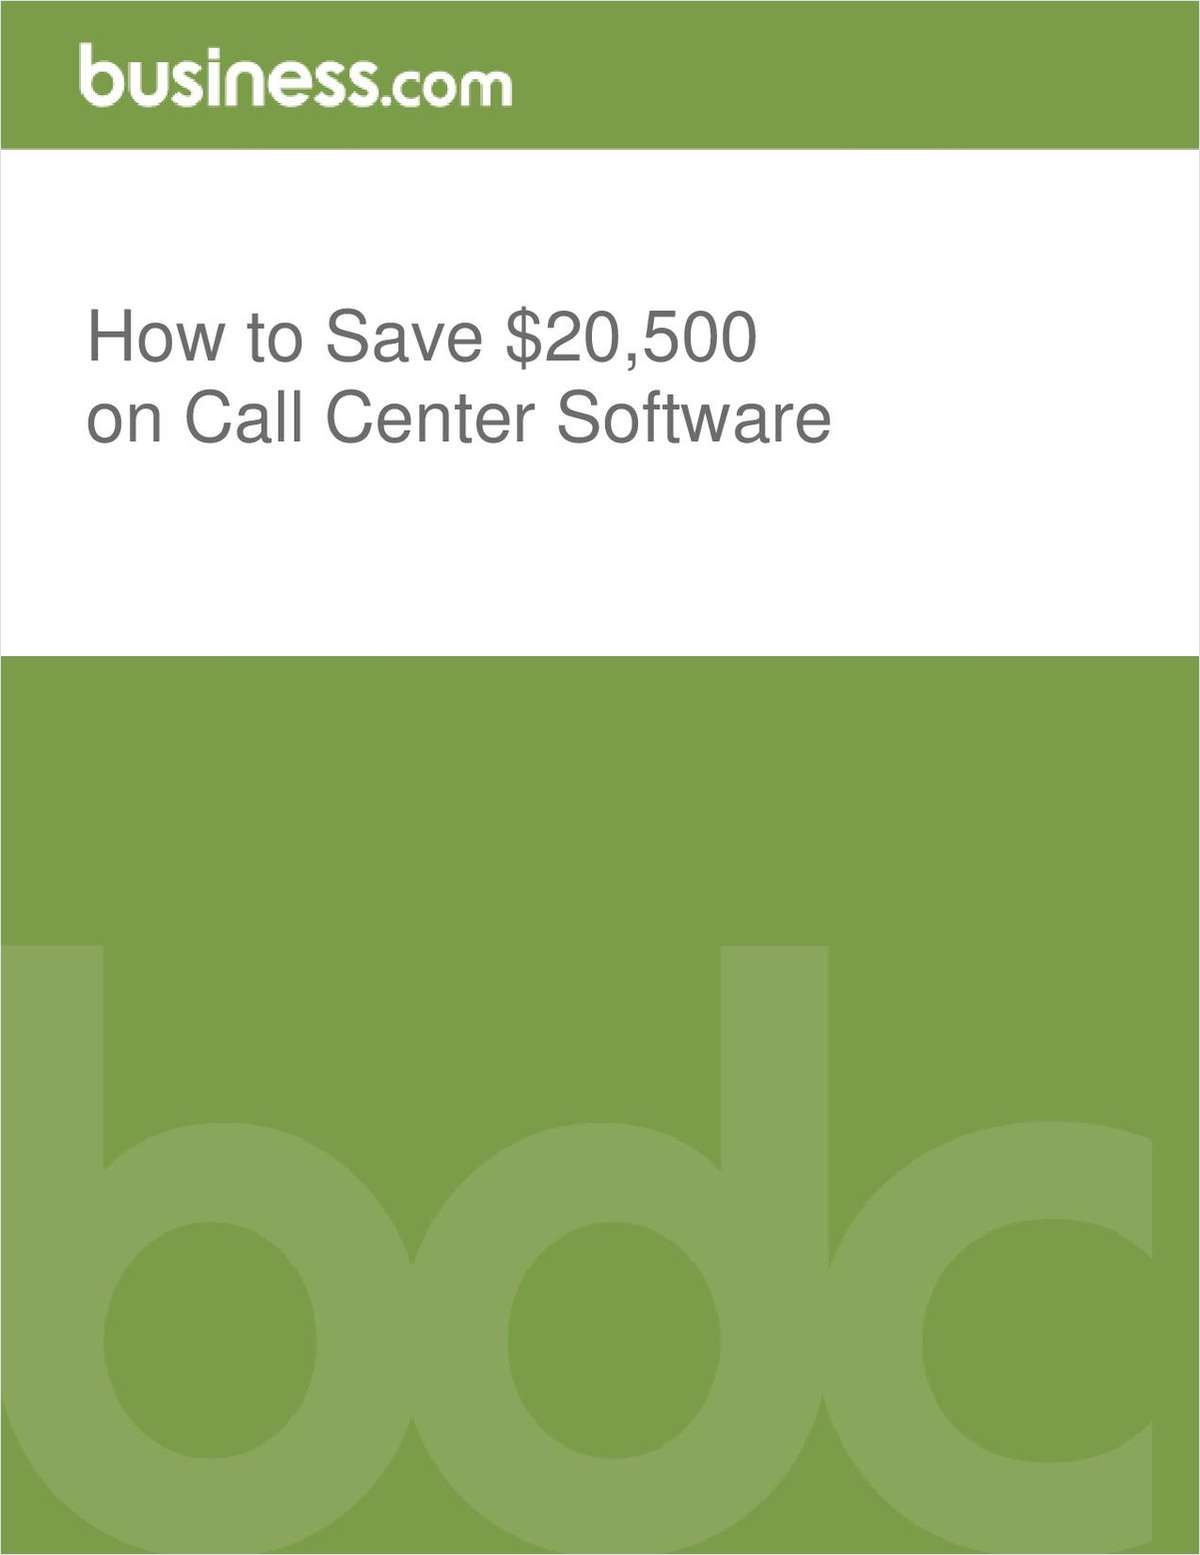 How to Save $20,500 on Call Center Software